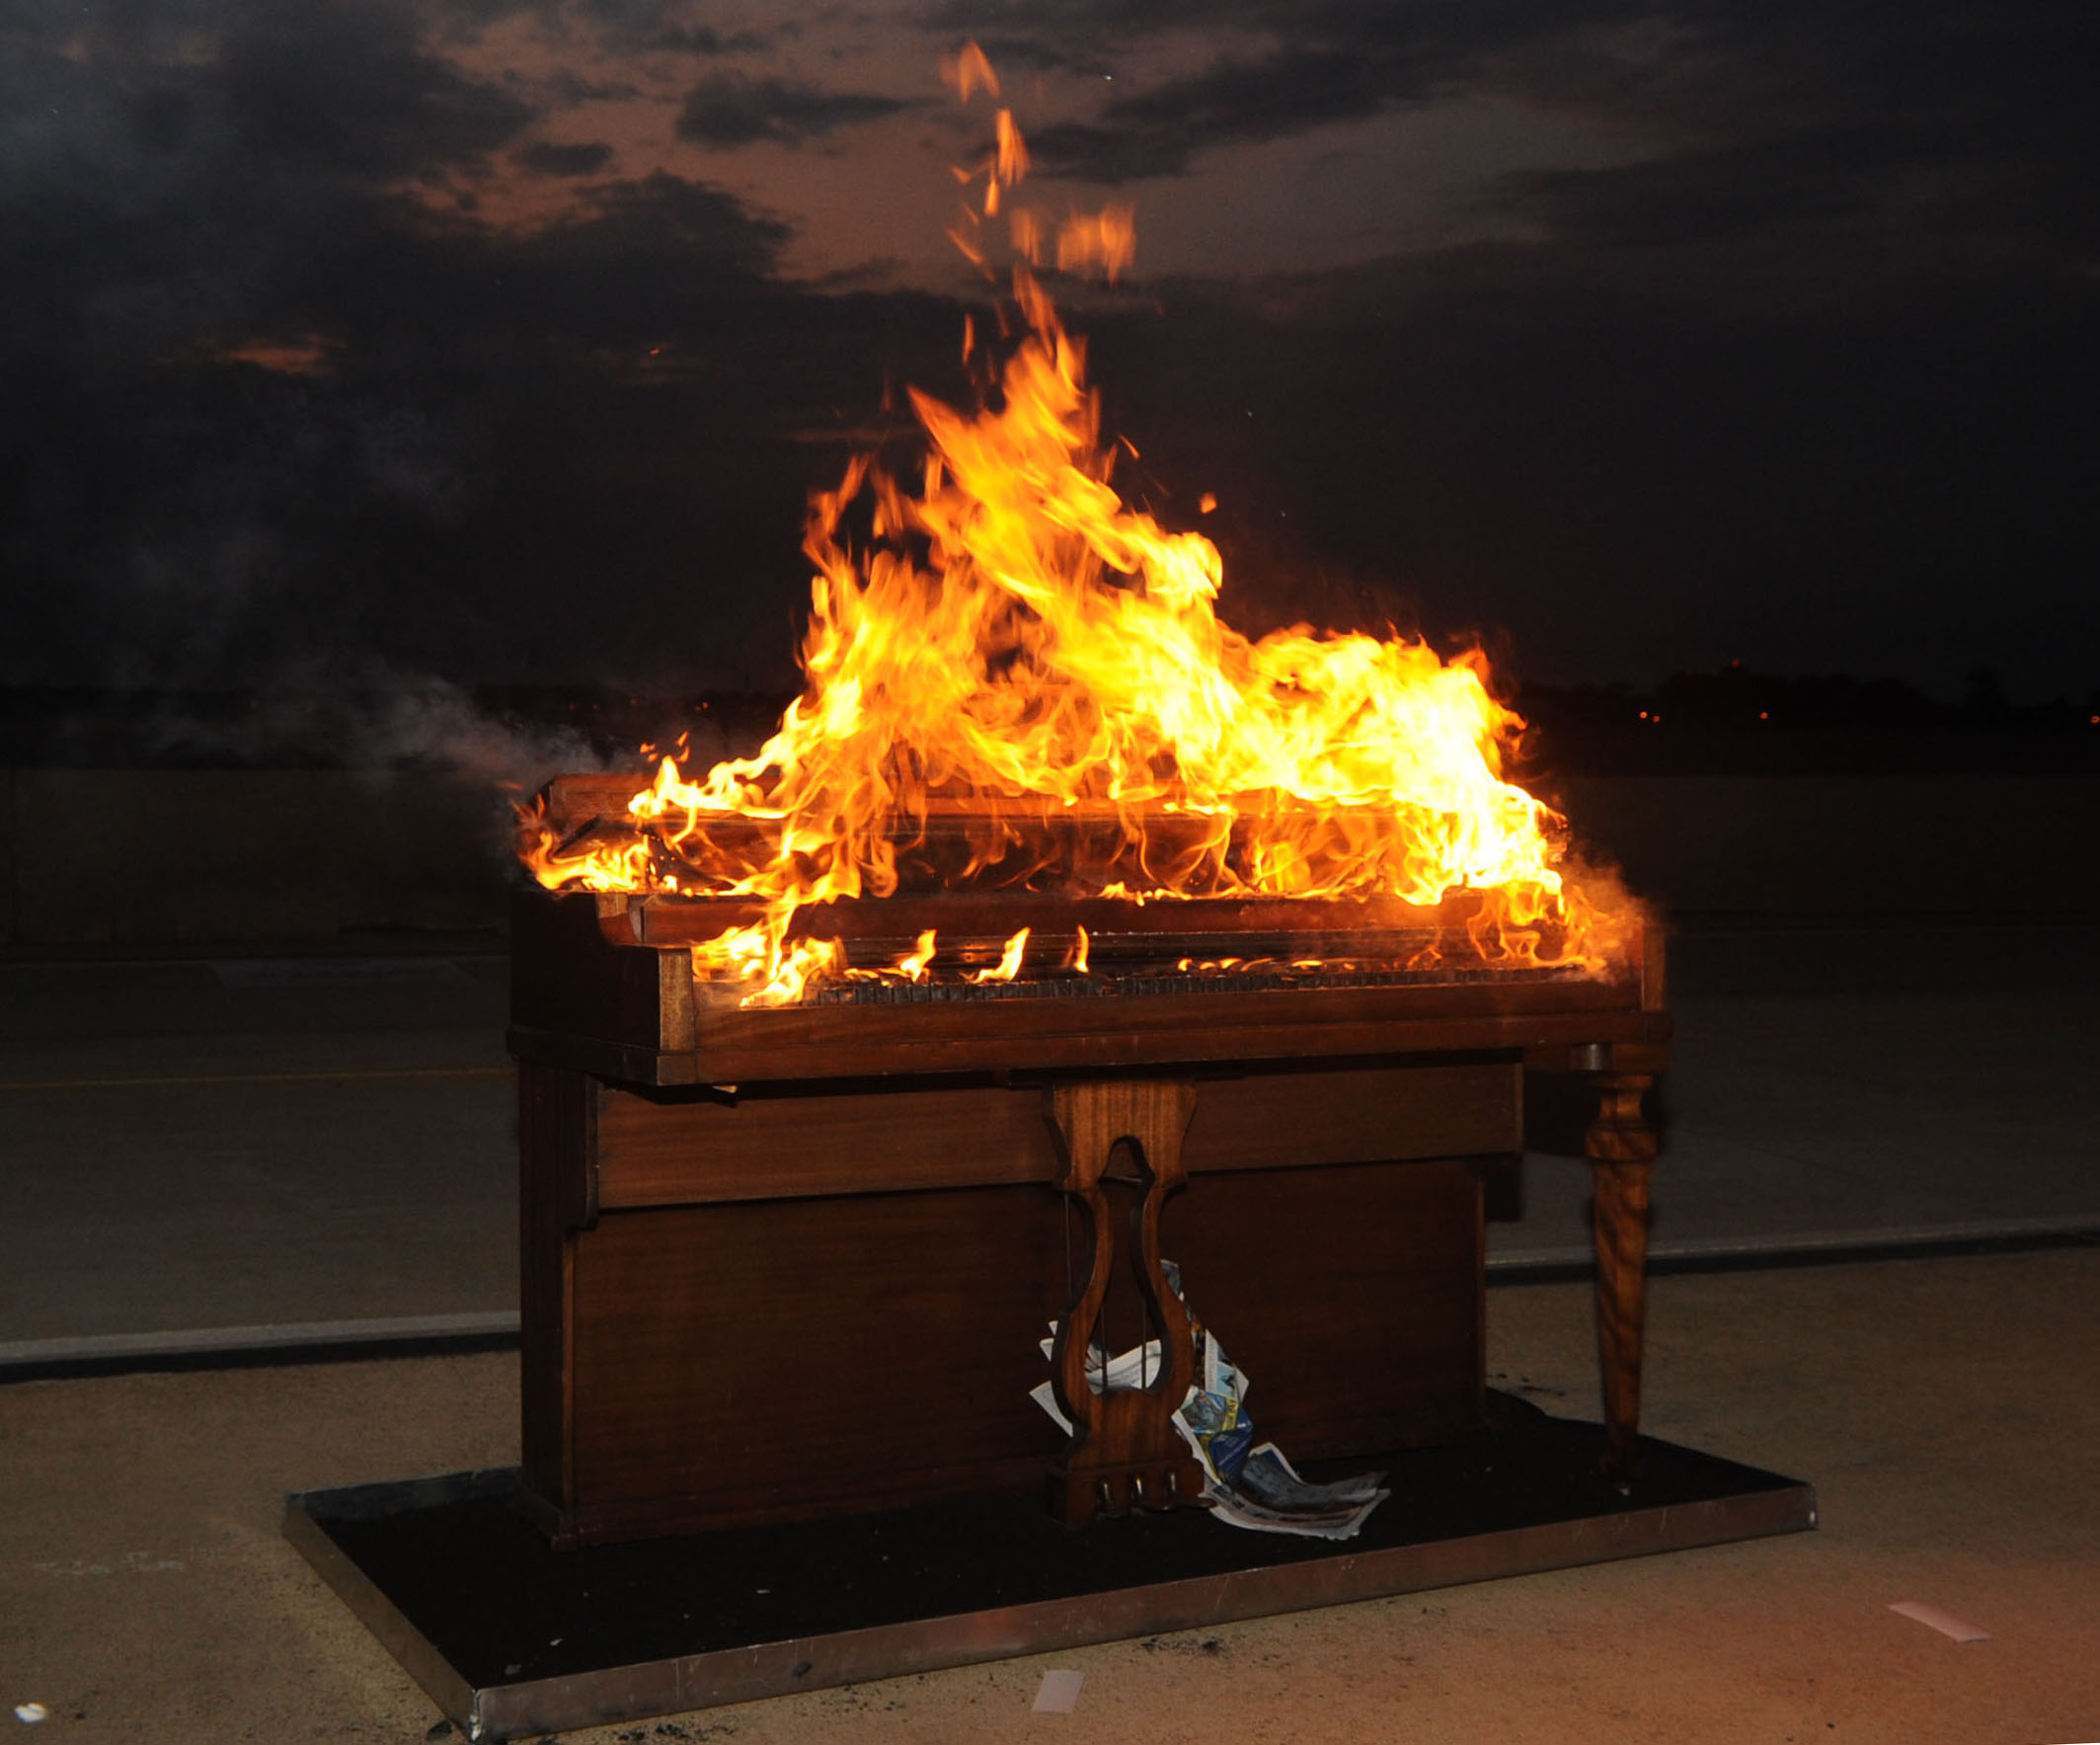 Image of a burning piano from the U.S. Air Force.